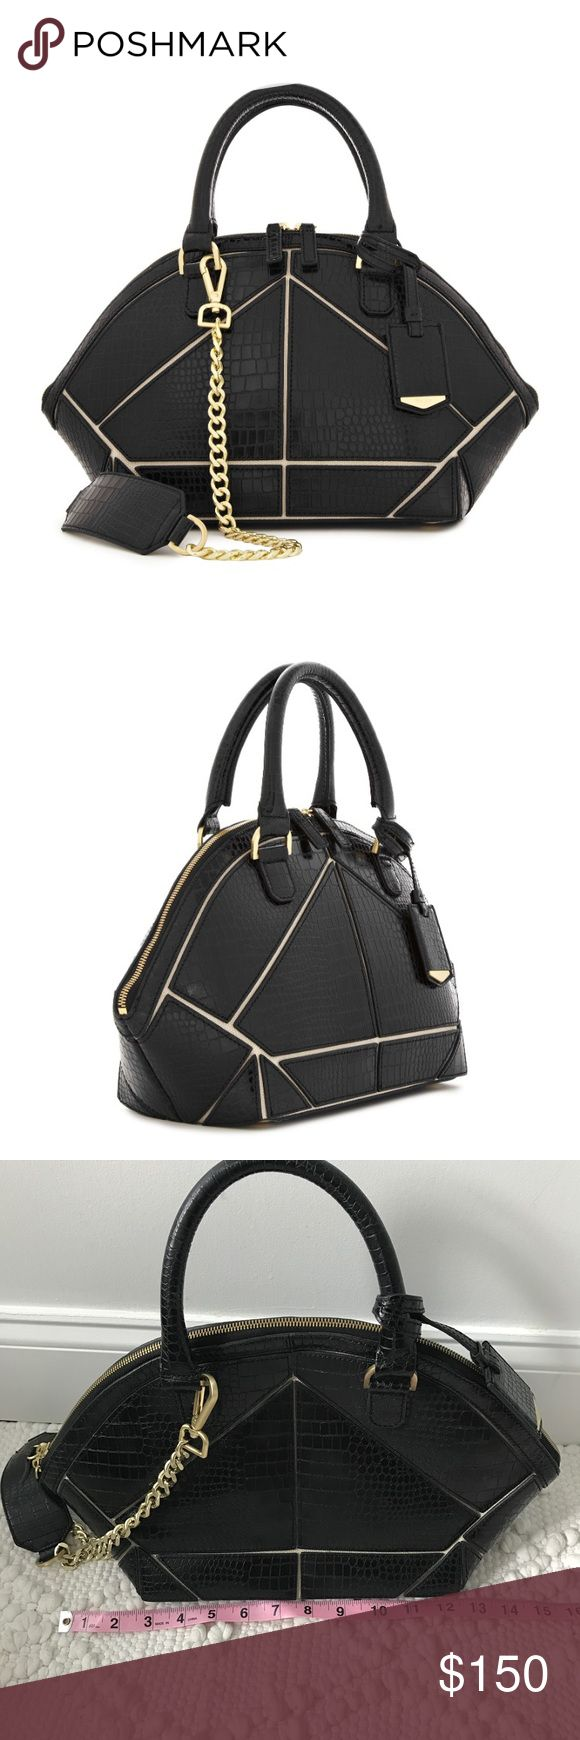 Reiss Fia Black Leather Tote Bag Satchel Zip Up Fia in black moc croc leather is a short handle bowling bag. In panelled moc croc over contrasting canvas, this retro-inspired shape has a modern touch: d-ring straps, a zip across top, gold studs to the base and a detachable chain strap with shoulder guard. Inside it is fully lined and has two pouches and one zip pocket. This Handbag is in excellent preowned condition. It has small signs of wear on the bottom on the gold hardware and on the…